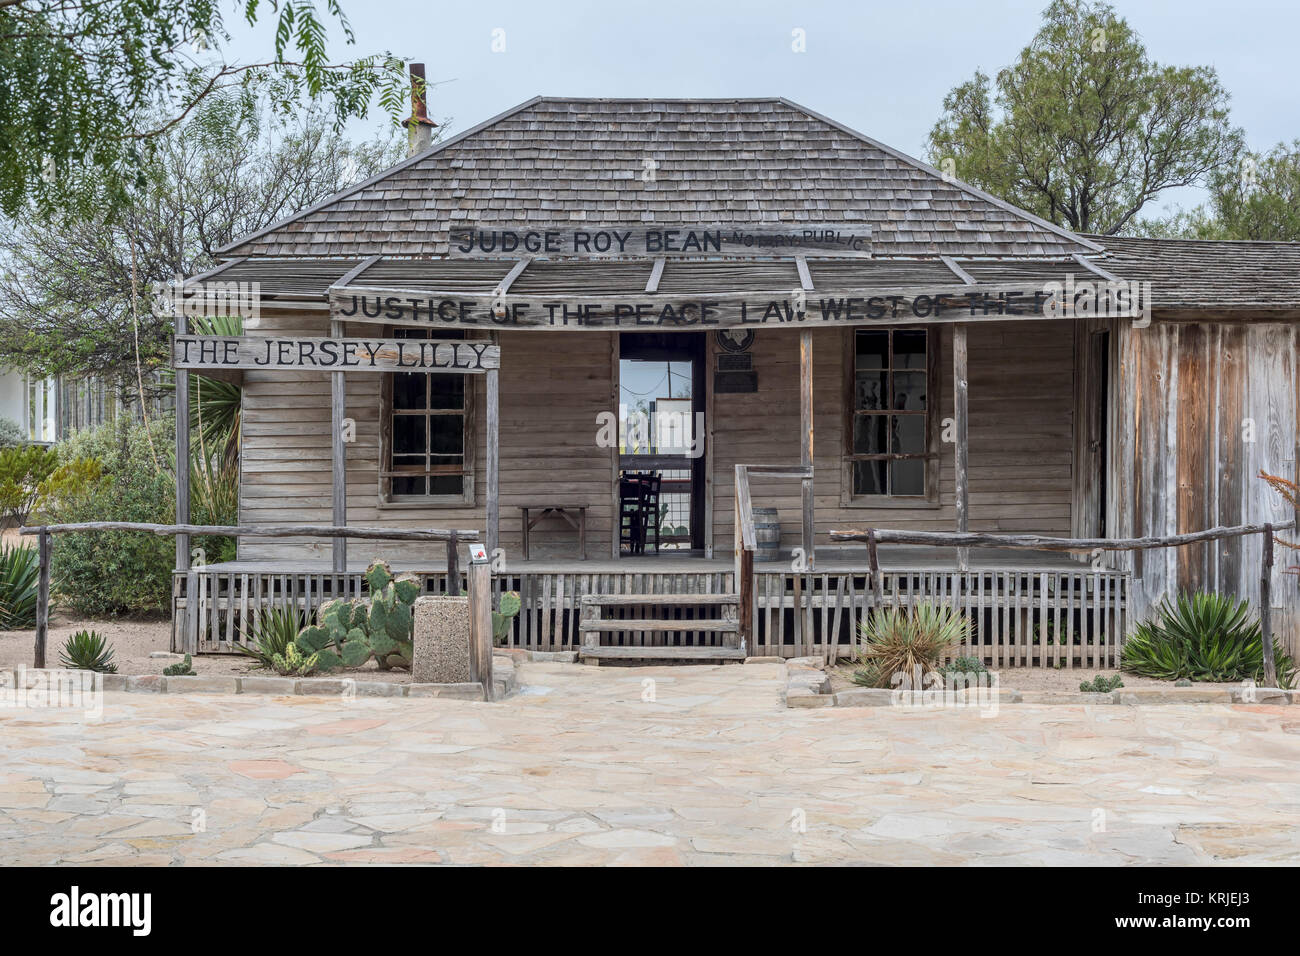 Langtry, Texas - The 'Jersey Lilly,' Judge Roy Bean's combination saloon and courtroom during the late - Stock Image